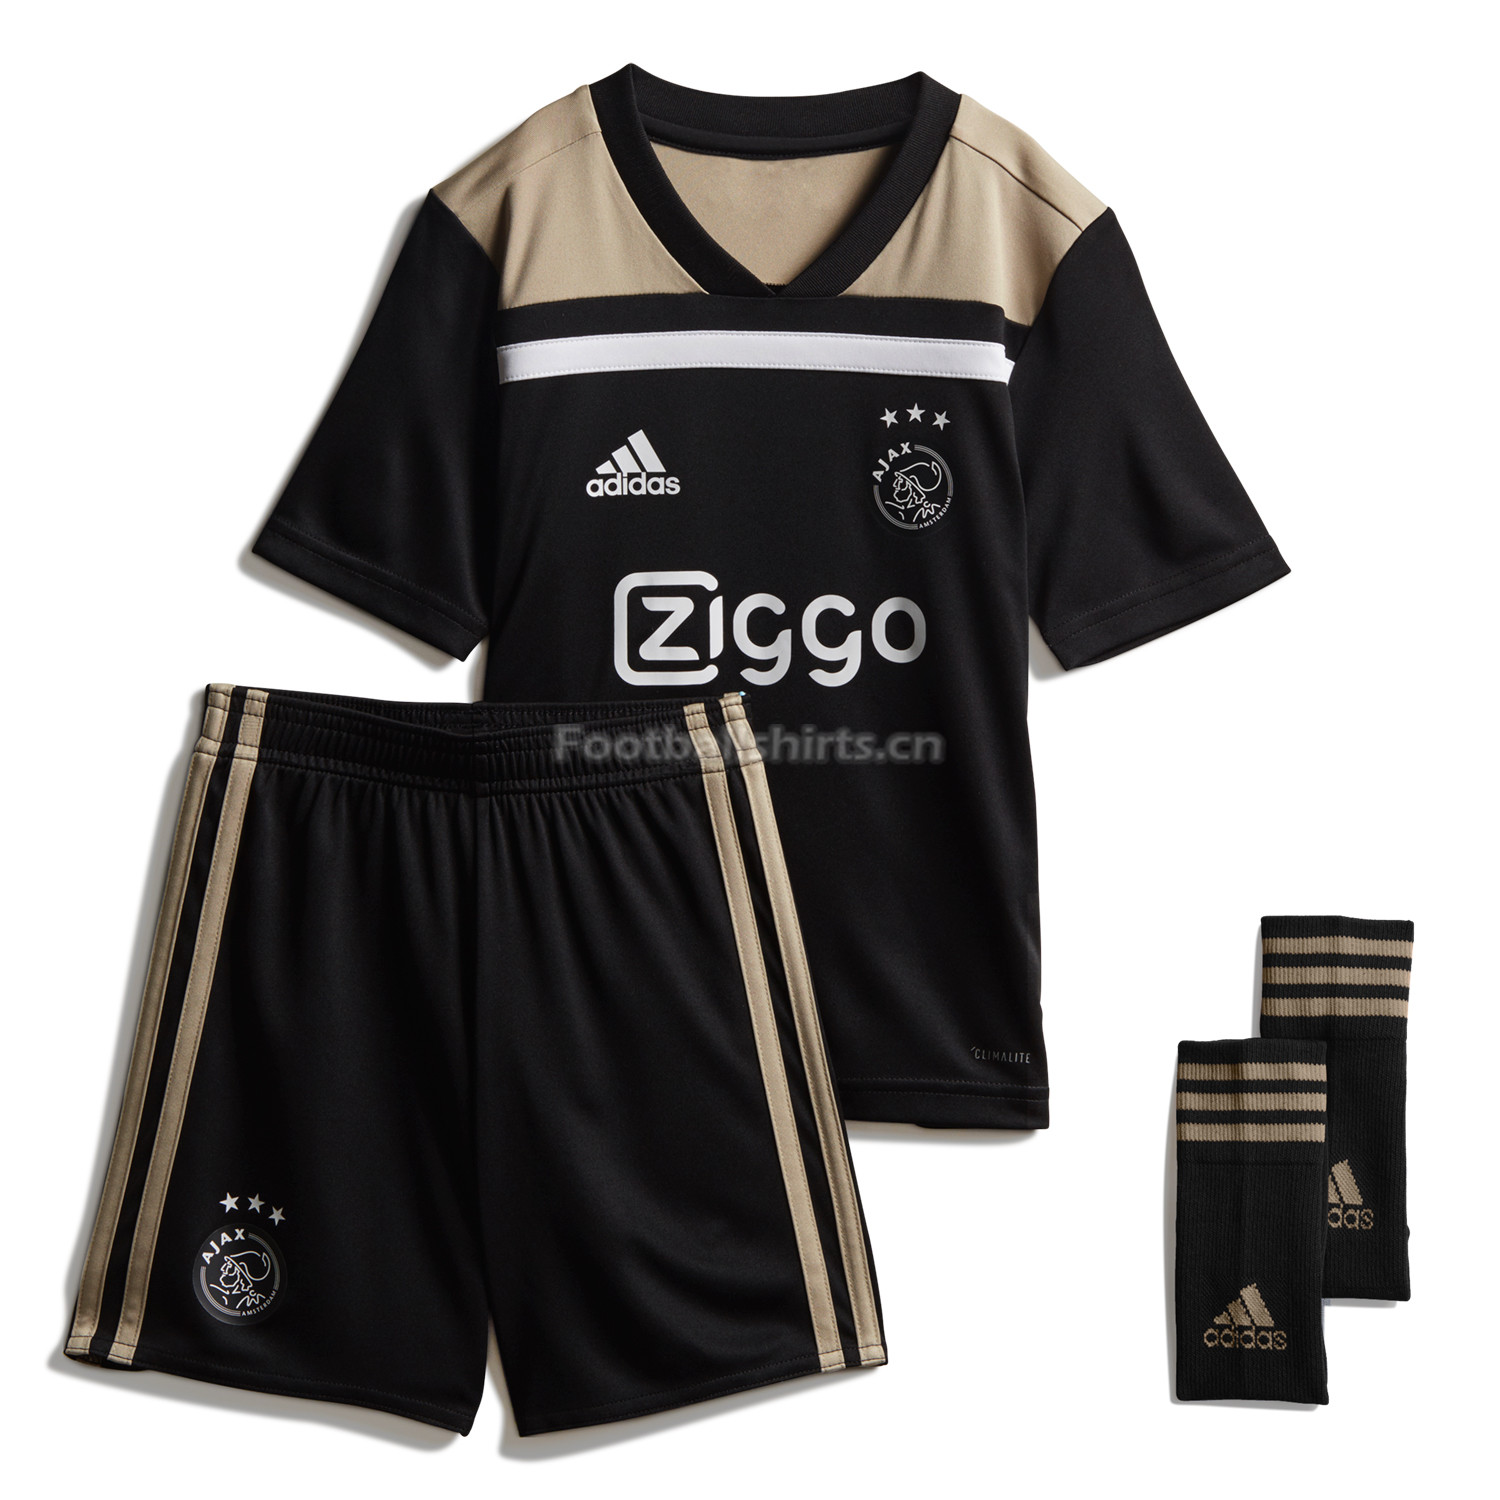 Kids Ajax Away Soccer Jersey Kit Shirt + Shorts + Socks 2018/19